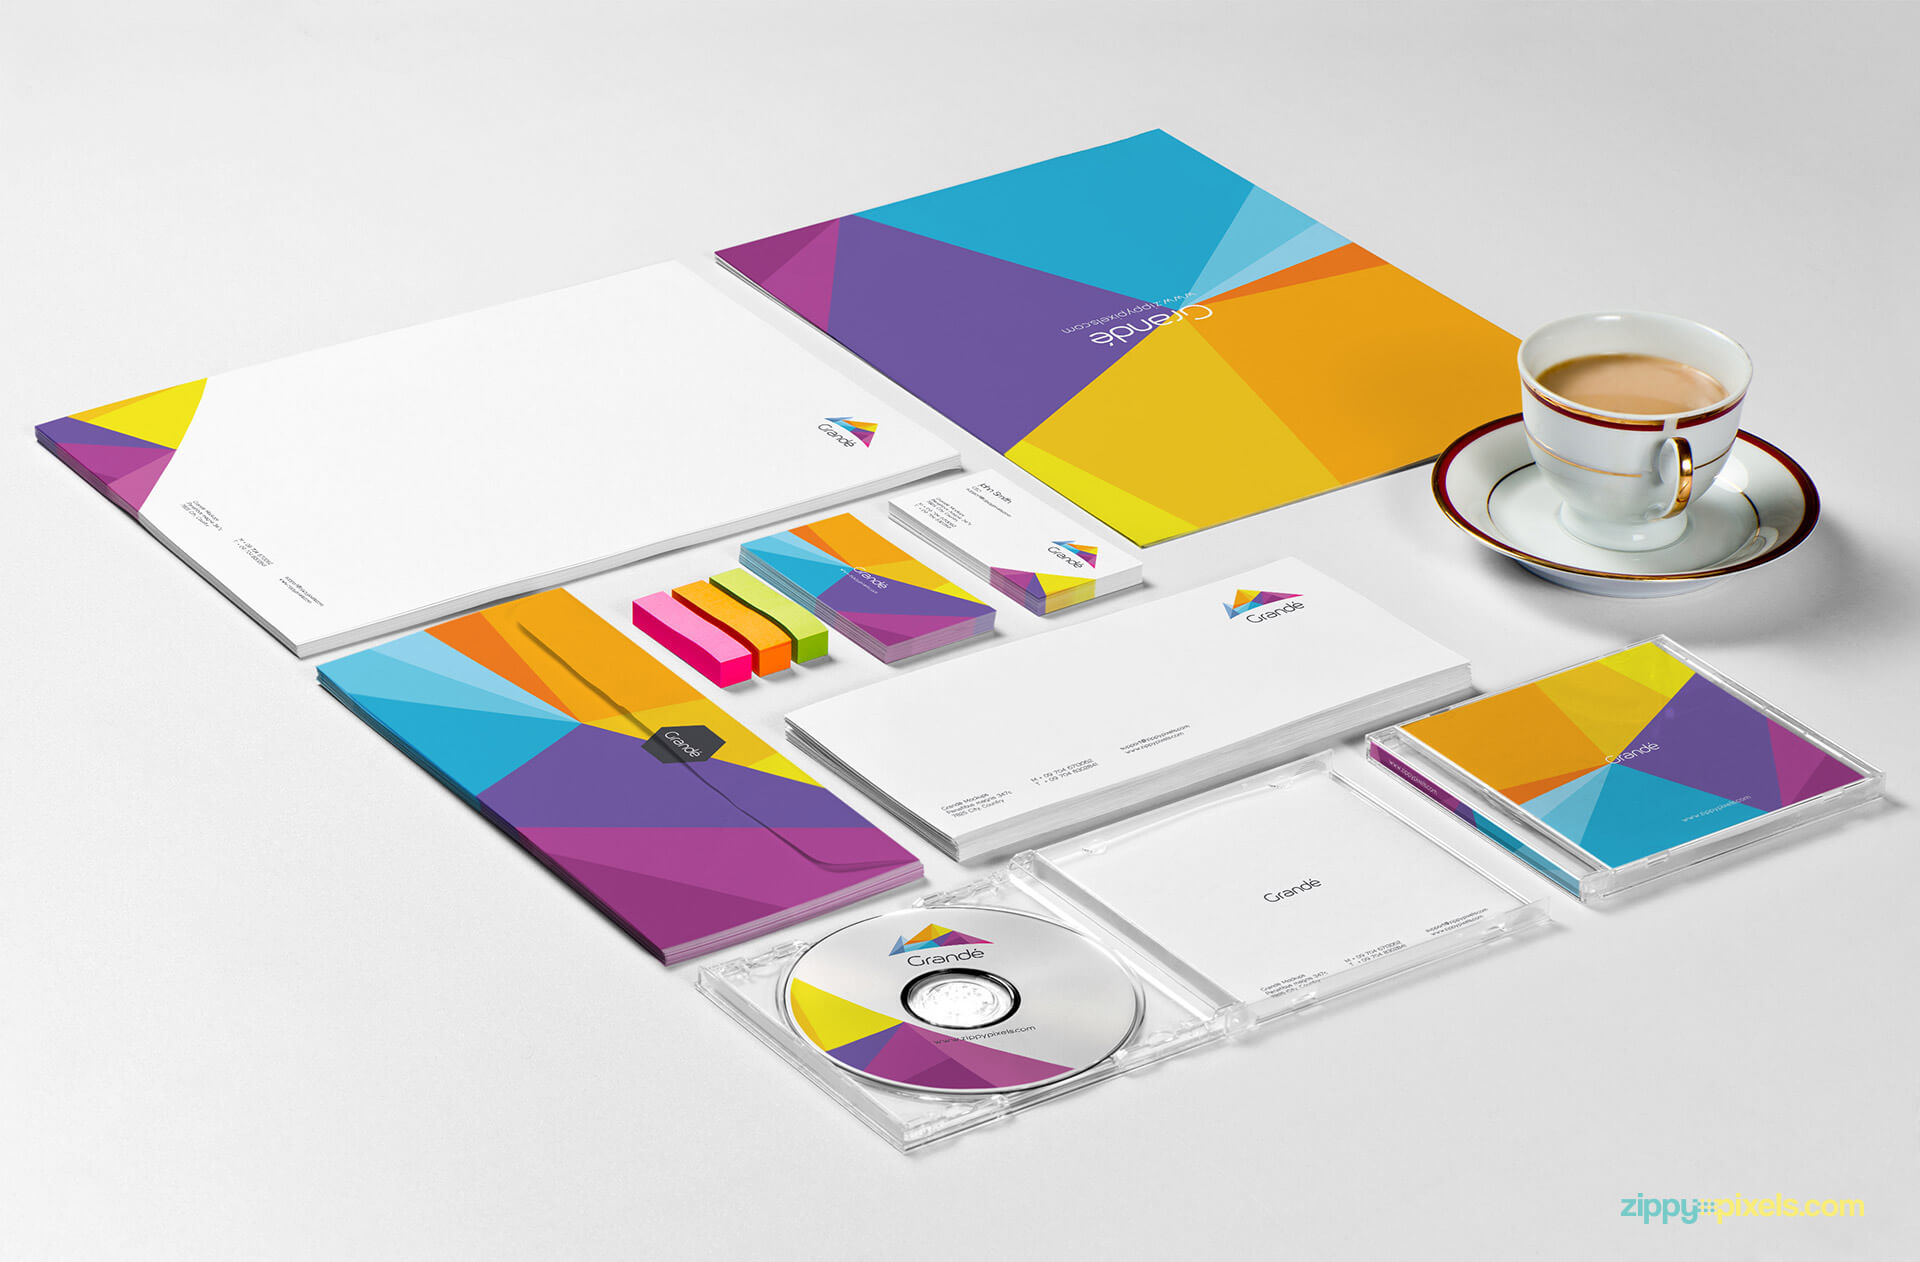 Comprehensive Stationery Branding Mockup of File Folder, Letterhead, Envelope, Business Cards & CD Cover with Tea Cup & Erasers